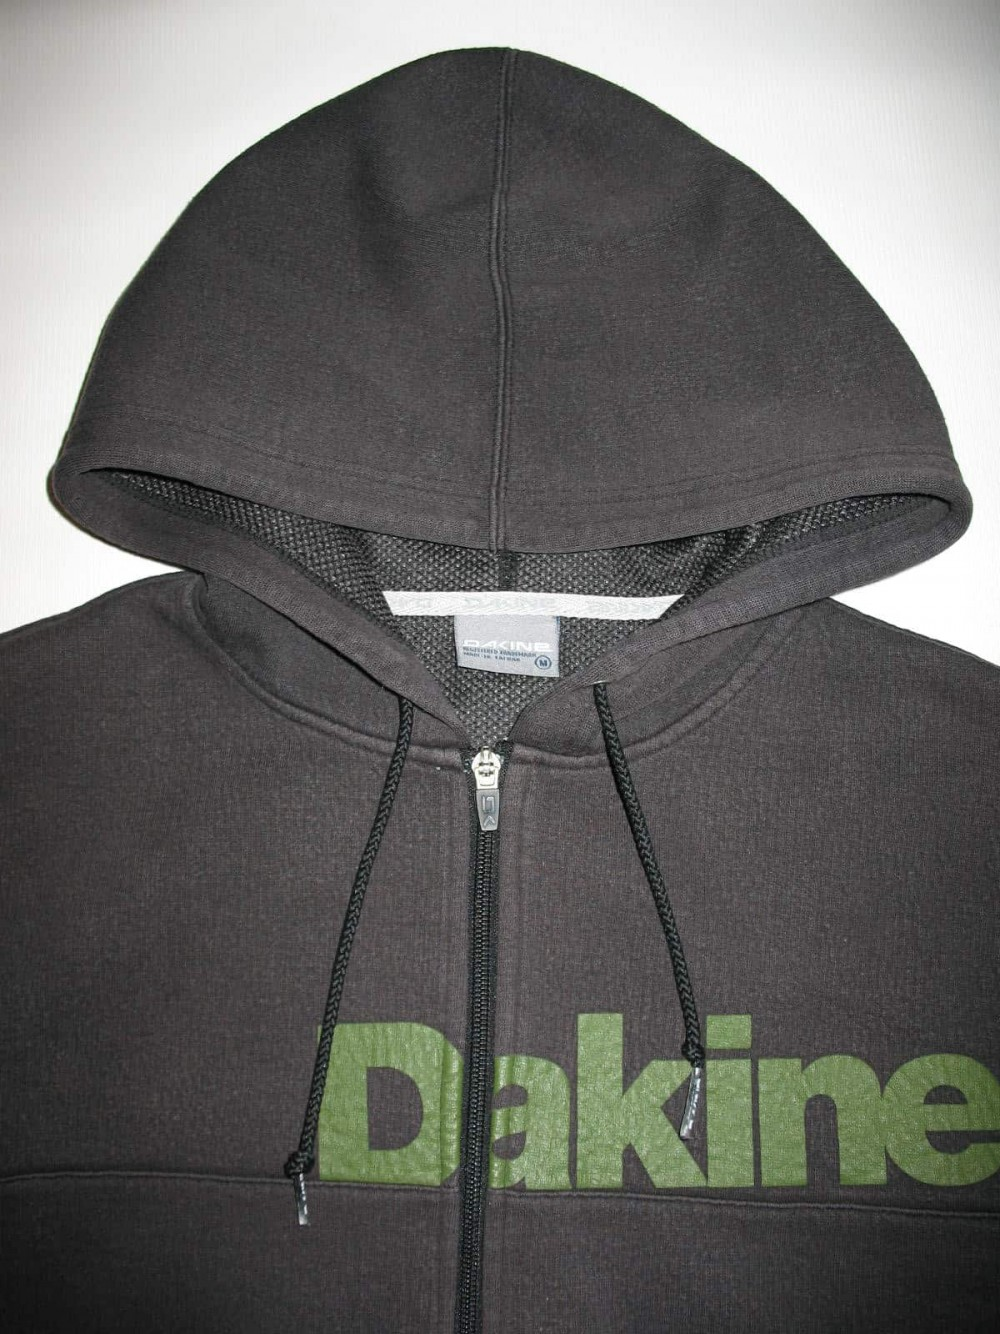 Куртка DAKINE windstopper hoody (размер M) - 2